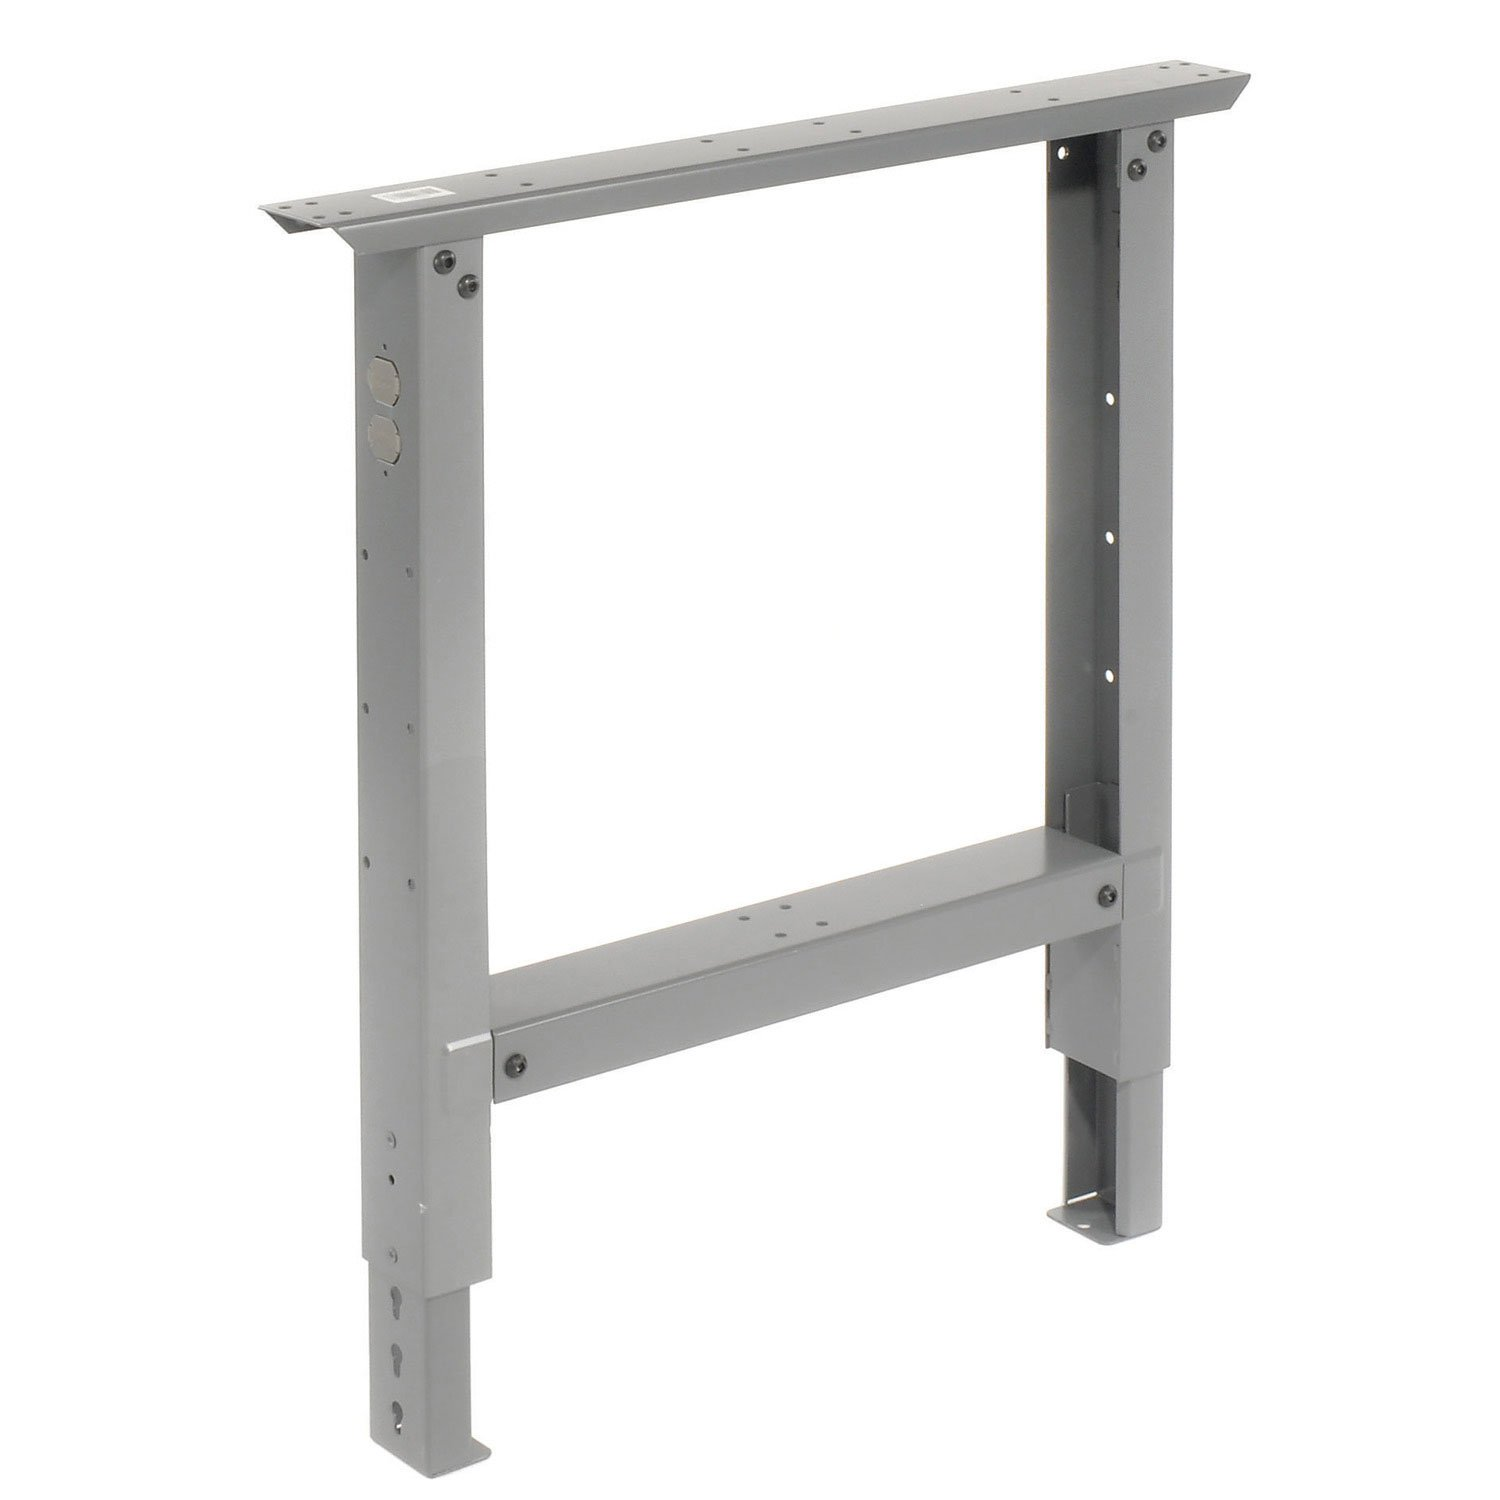 Adjustable Height Leg For 30'' Benches, 27-7/8 To 35-3/8, Gray